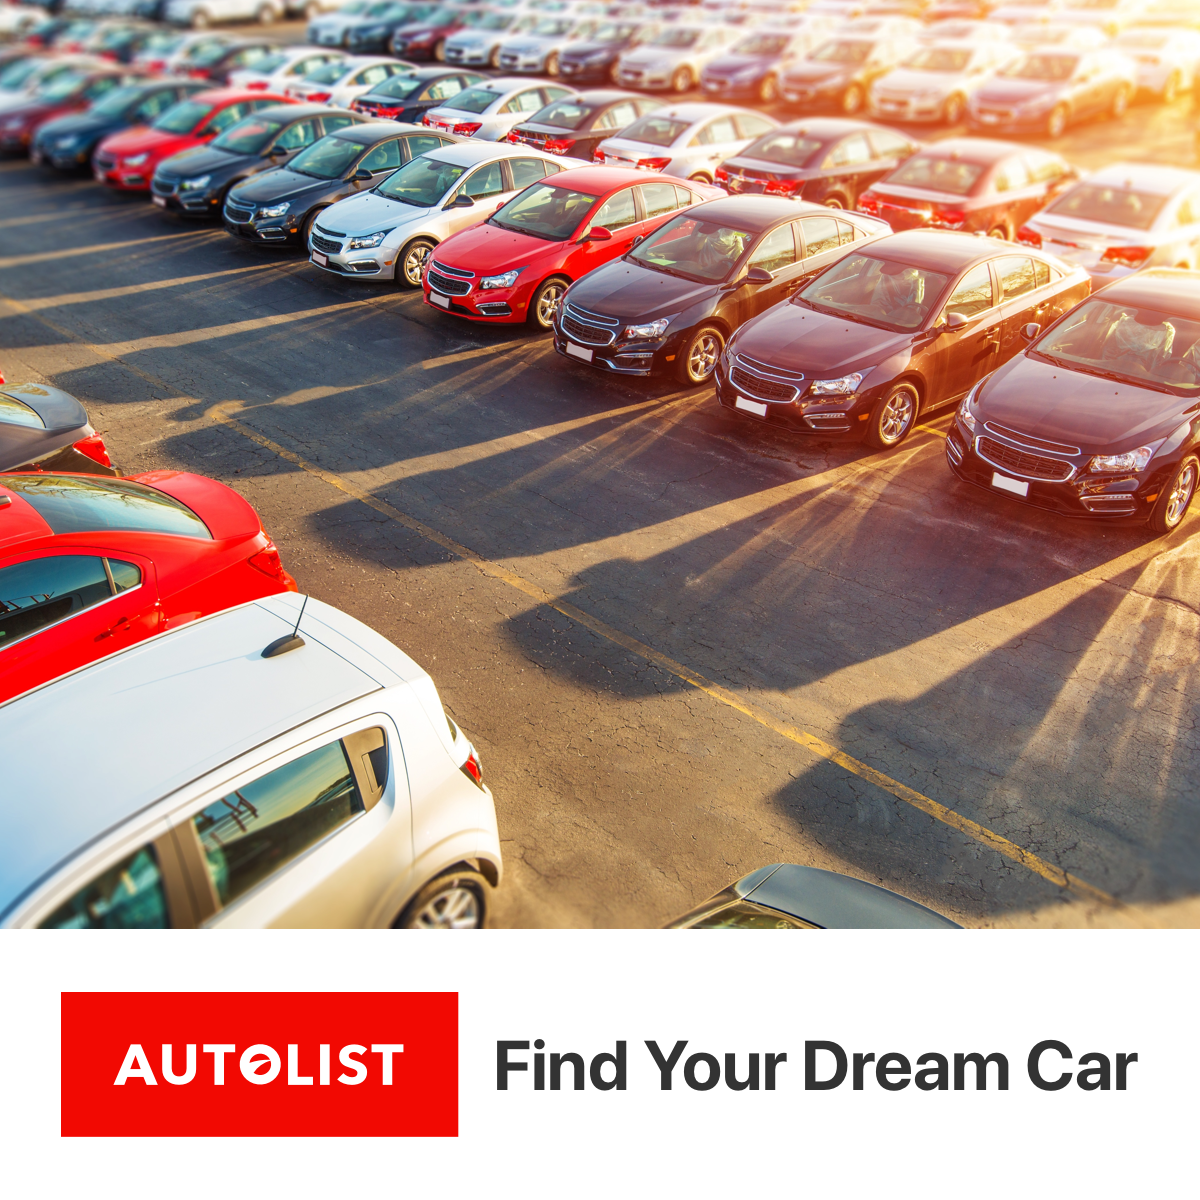 Autolist: Search New And Used Cars For Sale, Compare